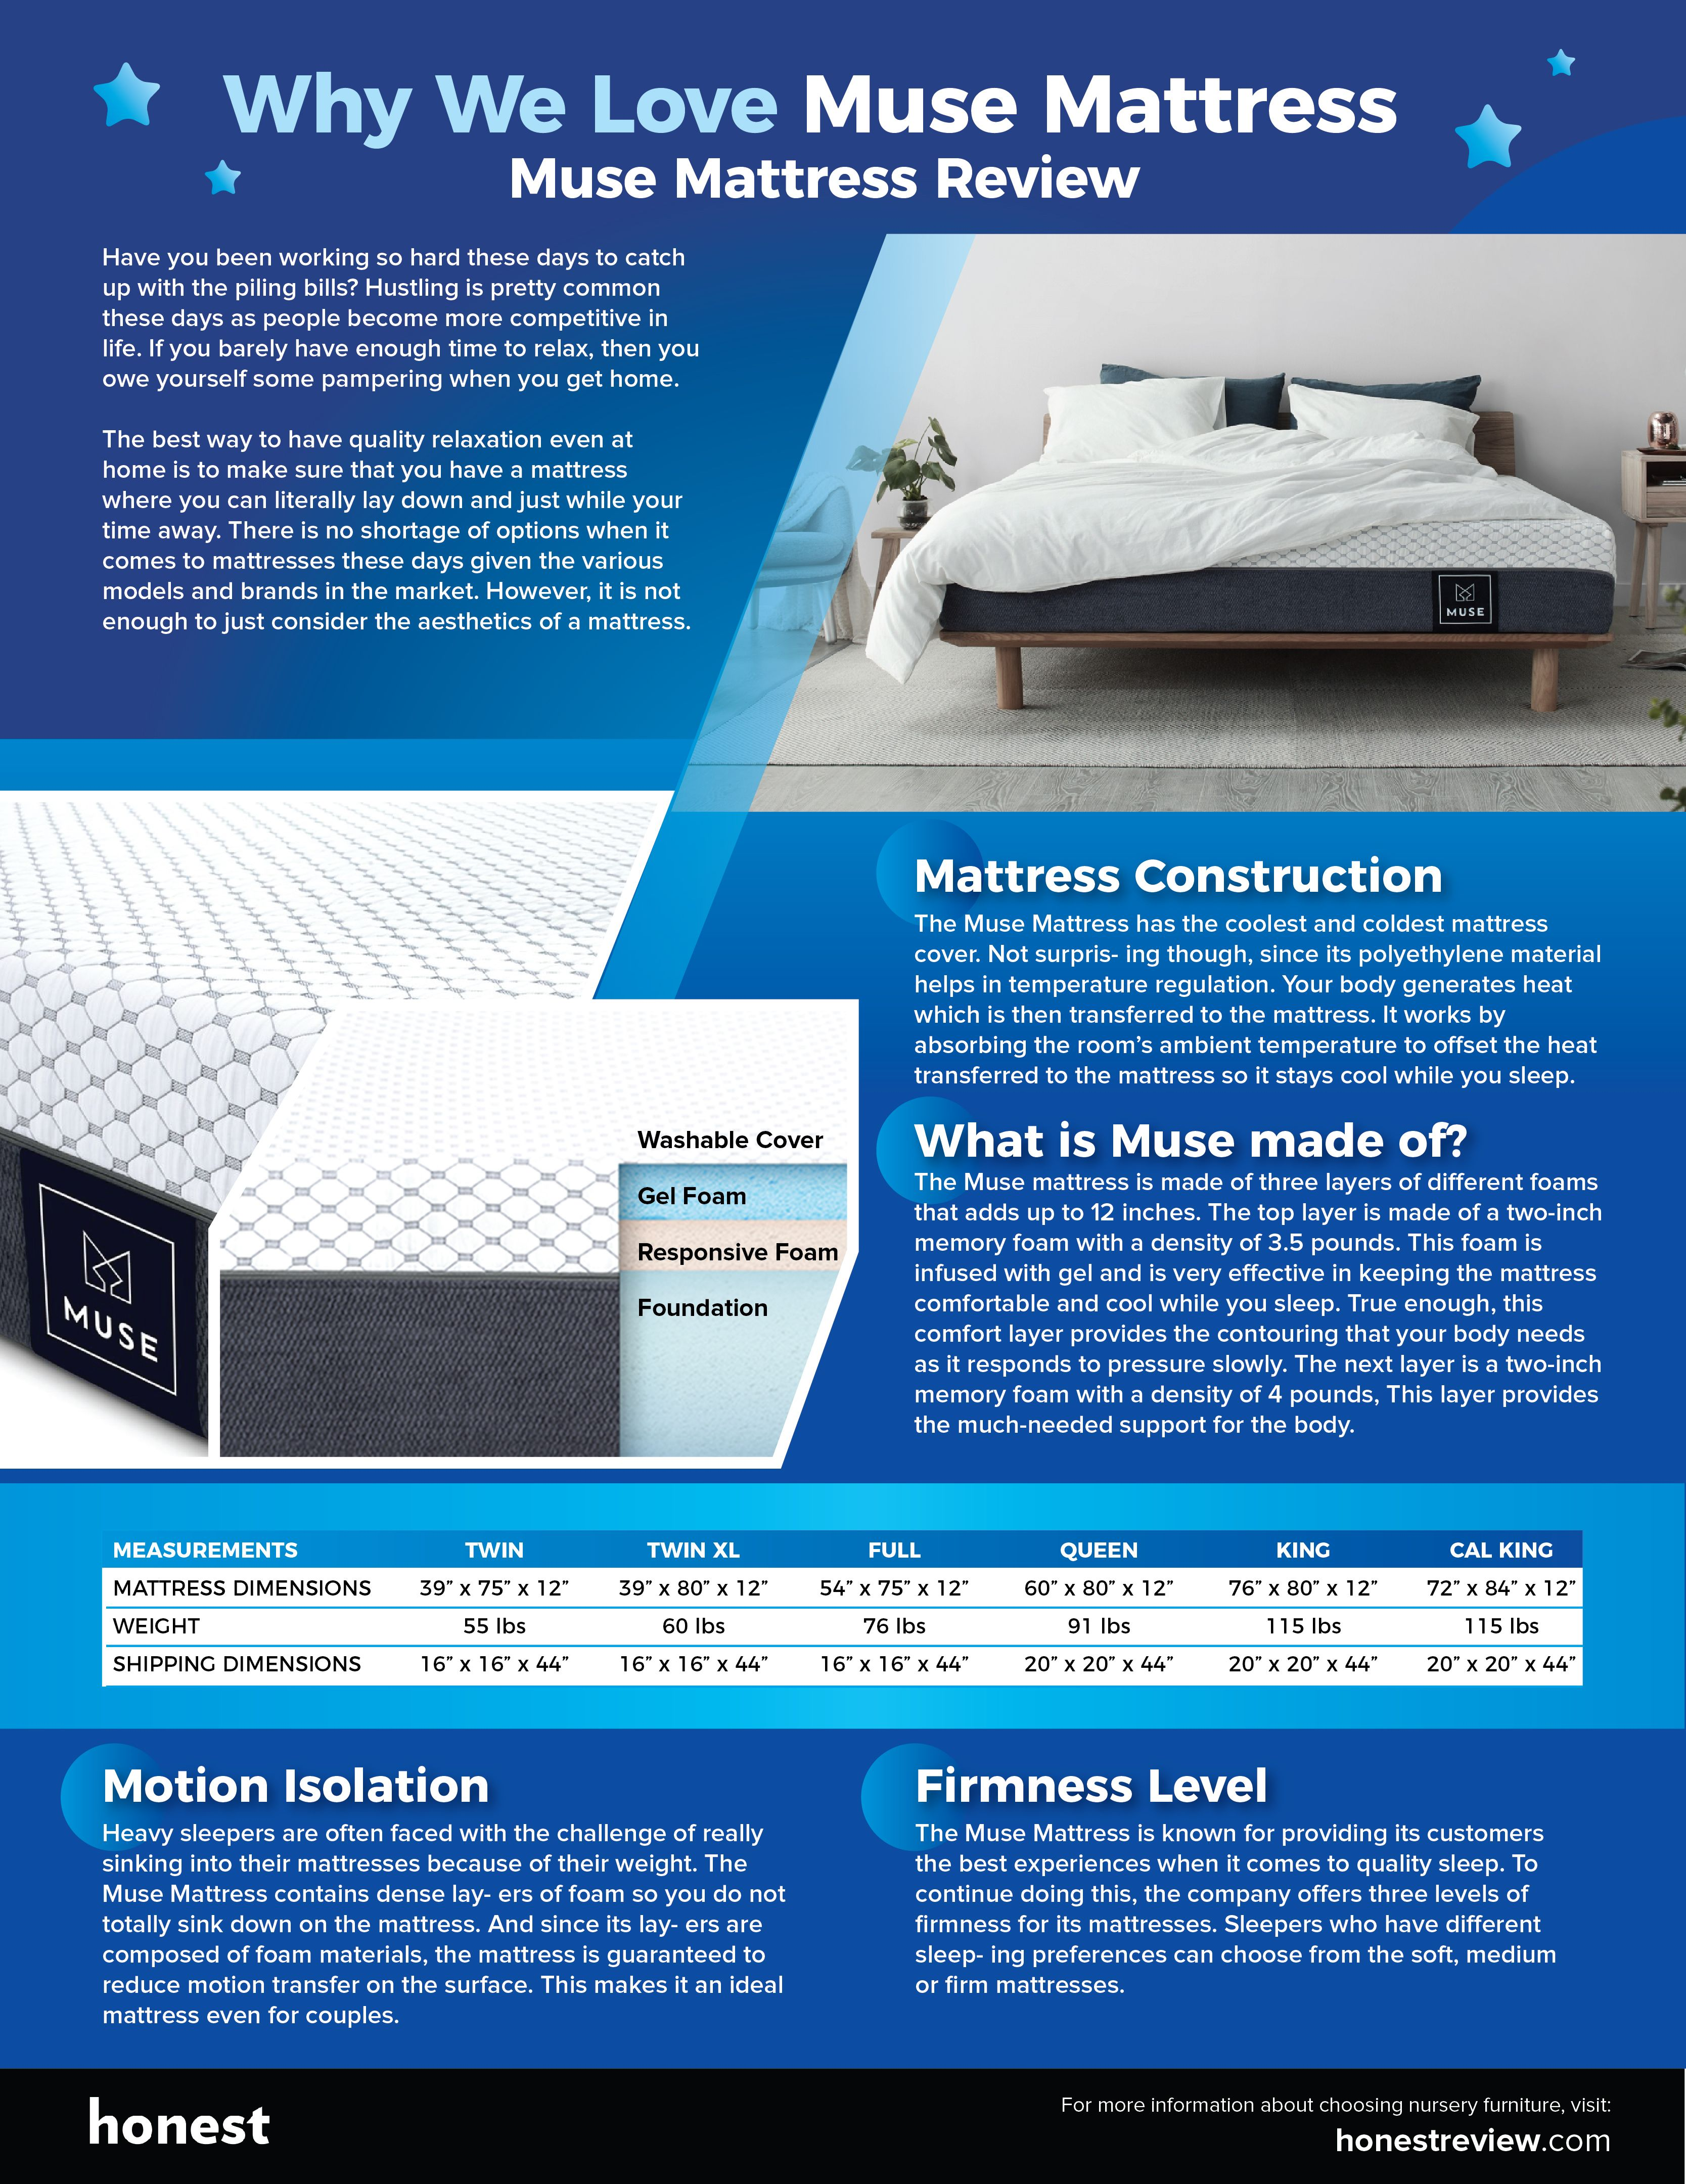 Muse Mattress has the coldest cover in the industry hands